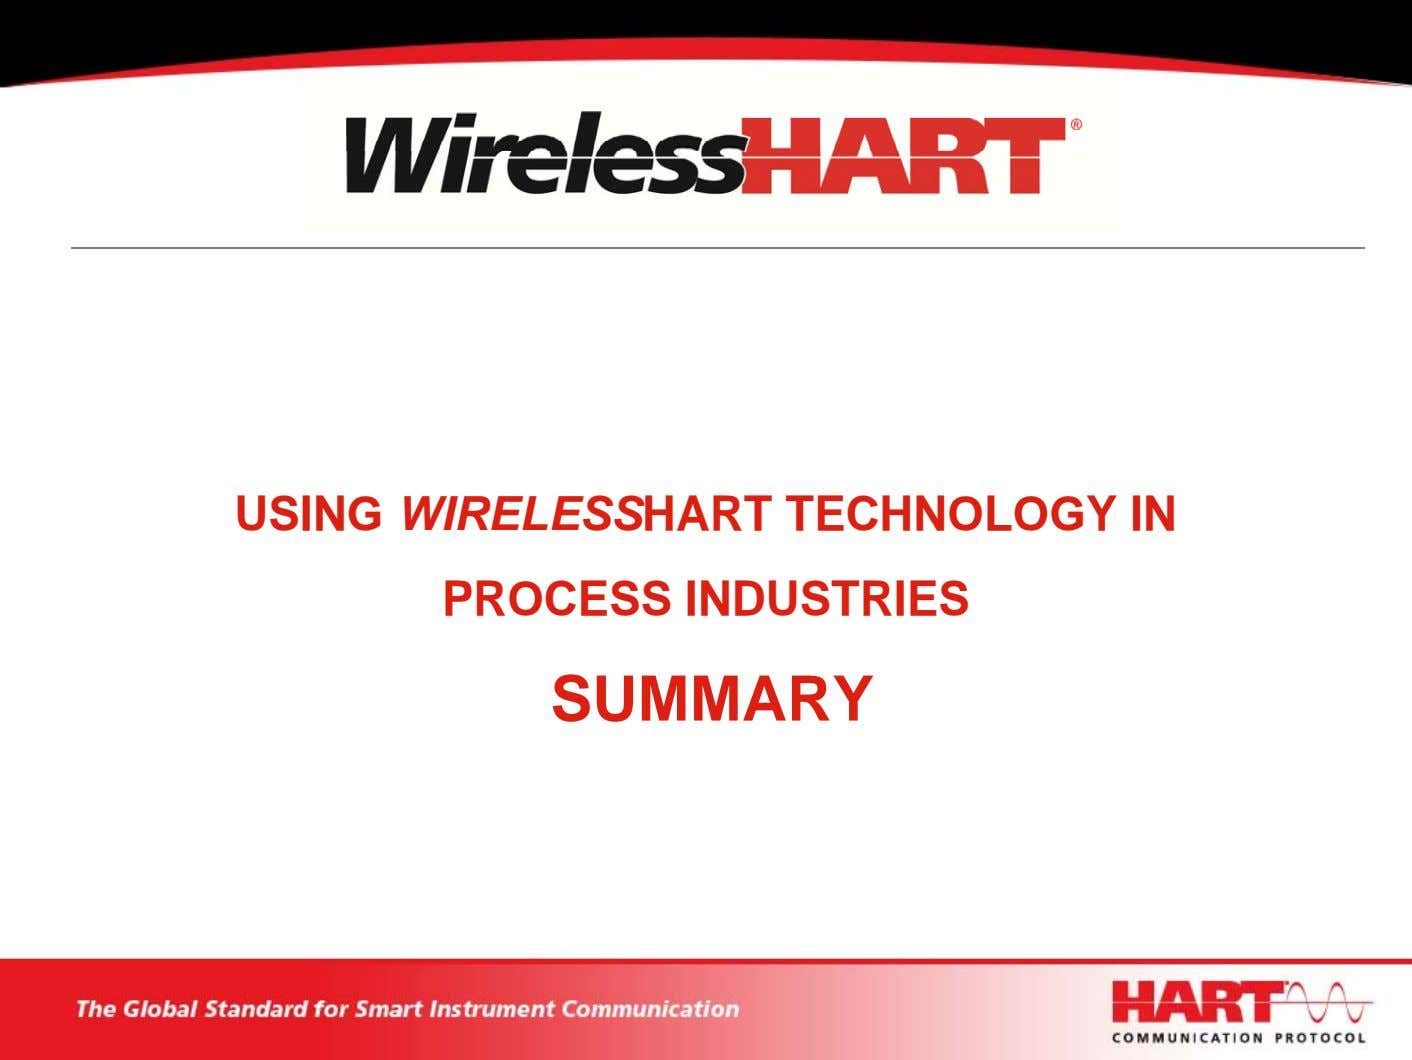 USING WIRELESSHART TECHNOLOGY IN PROCESS INDUSTRIES SUMMARY